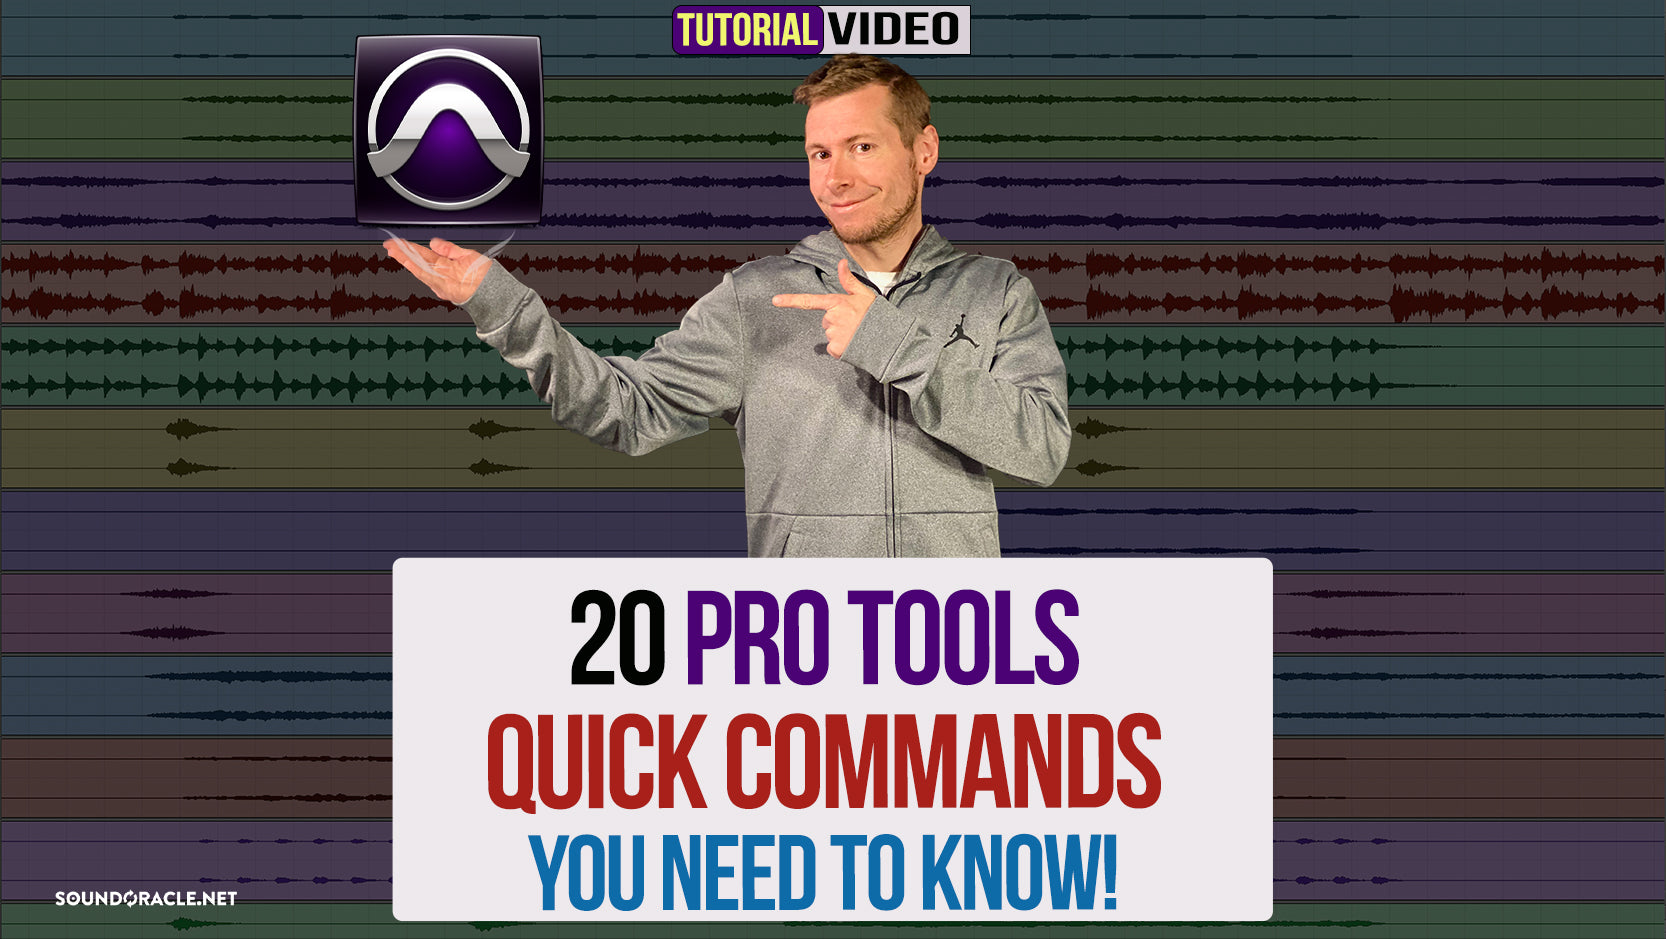 20 Pro Tools Quick Commands You Need To Know